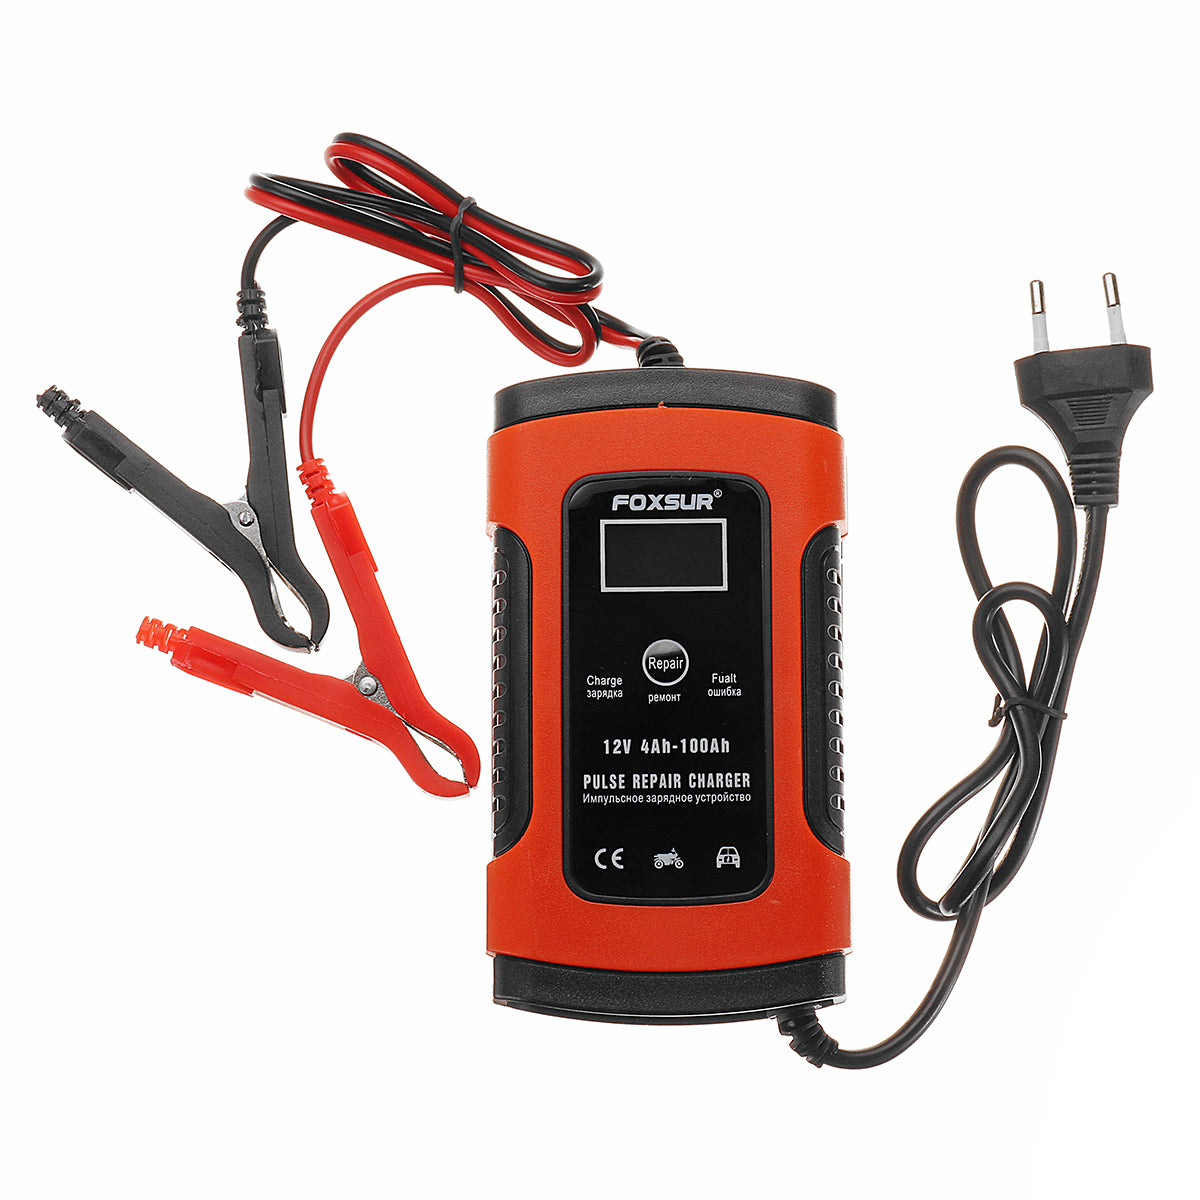 110-220V Intelligent Battery Charger 12V 5A Pulse Repair Battery Charging with LCD Display